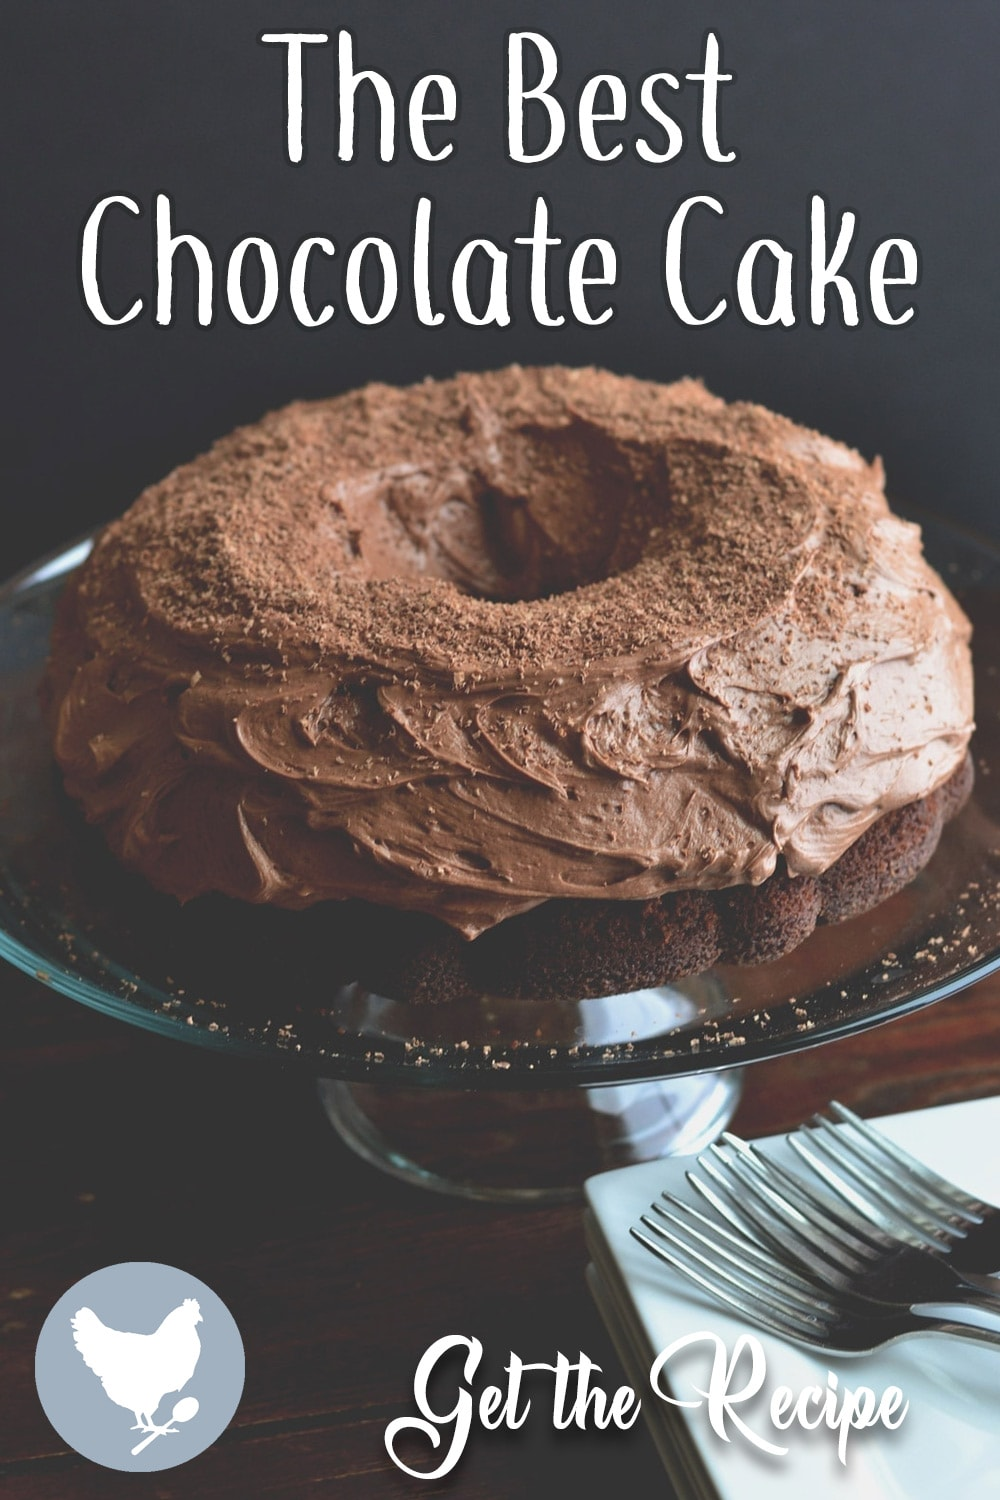 The Best Chocolate Cake - Homemade chocolate cake from scratch, with  rich chocolate frosting. This will be your favorite chocolate cake ever!